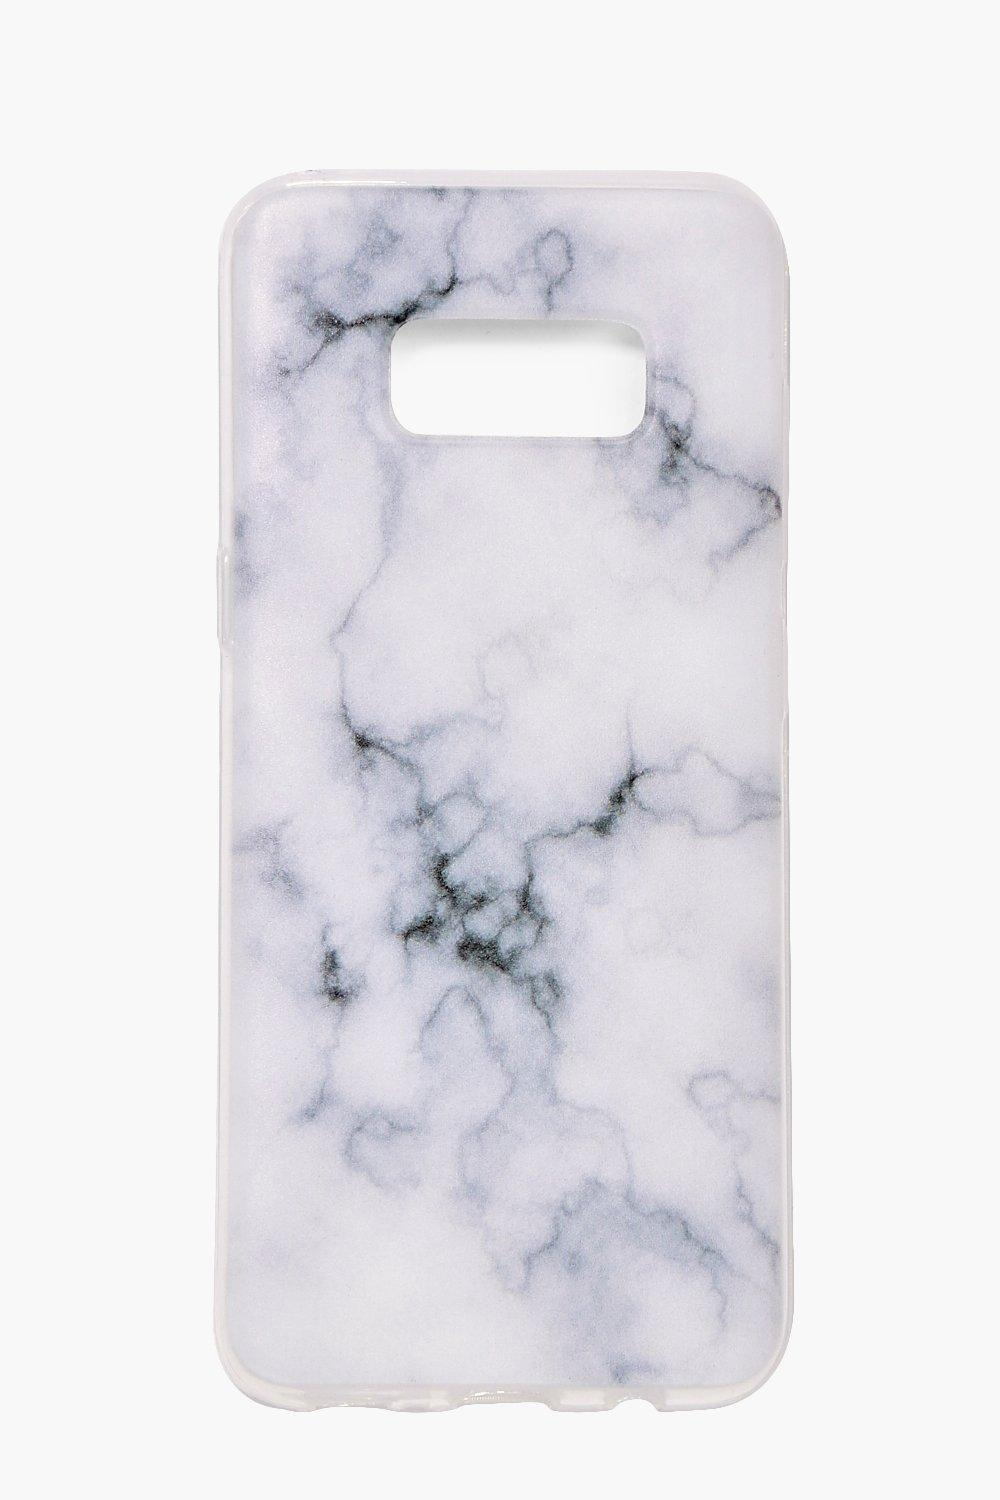 Galaxy S8 Marble Phone Case - white - Samsung Gala